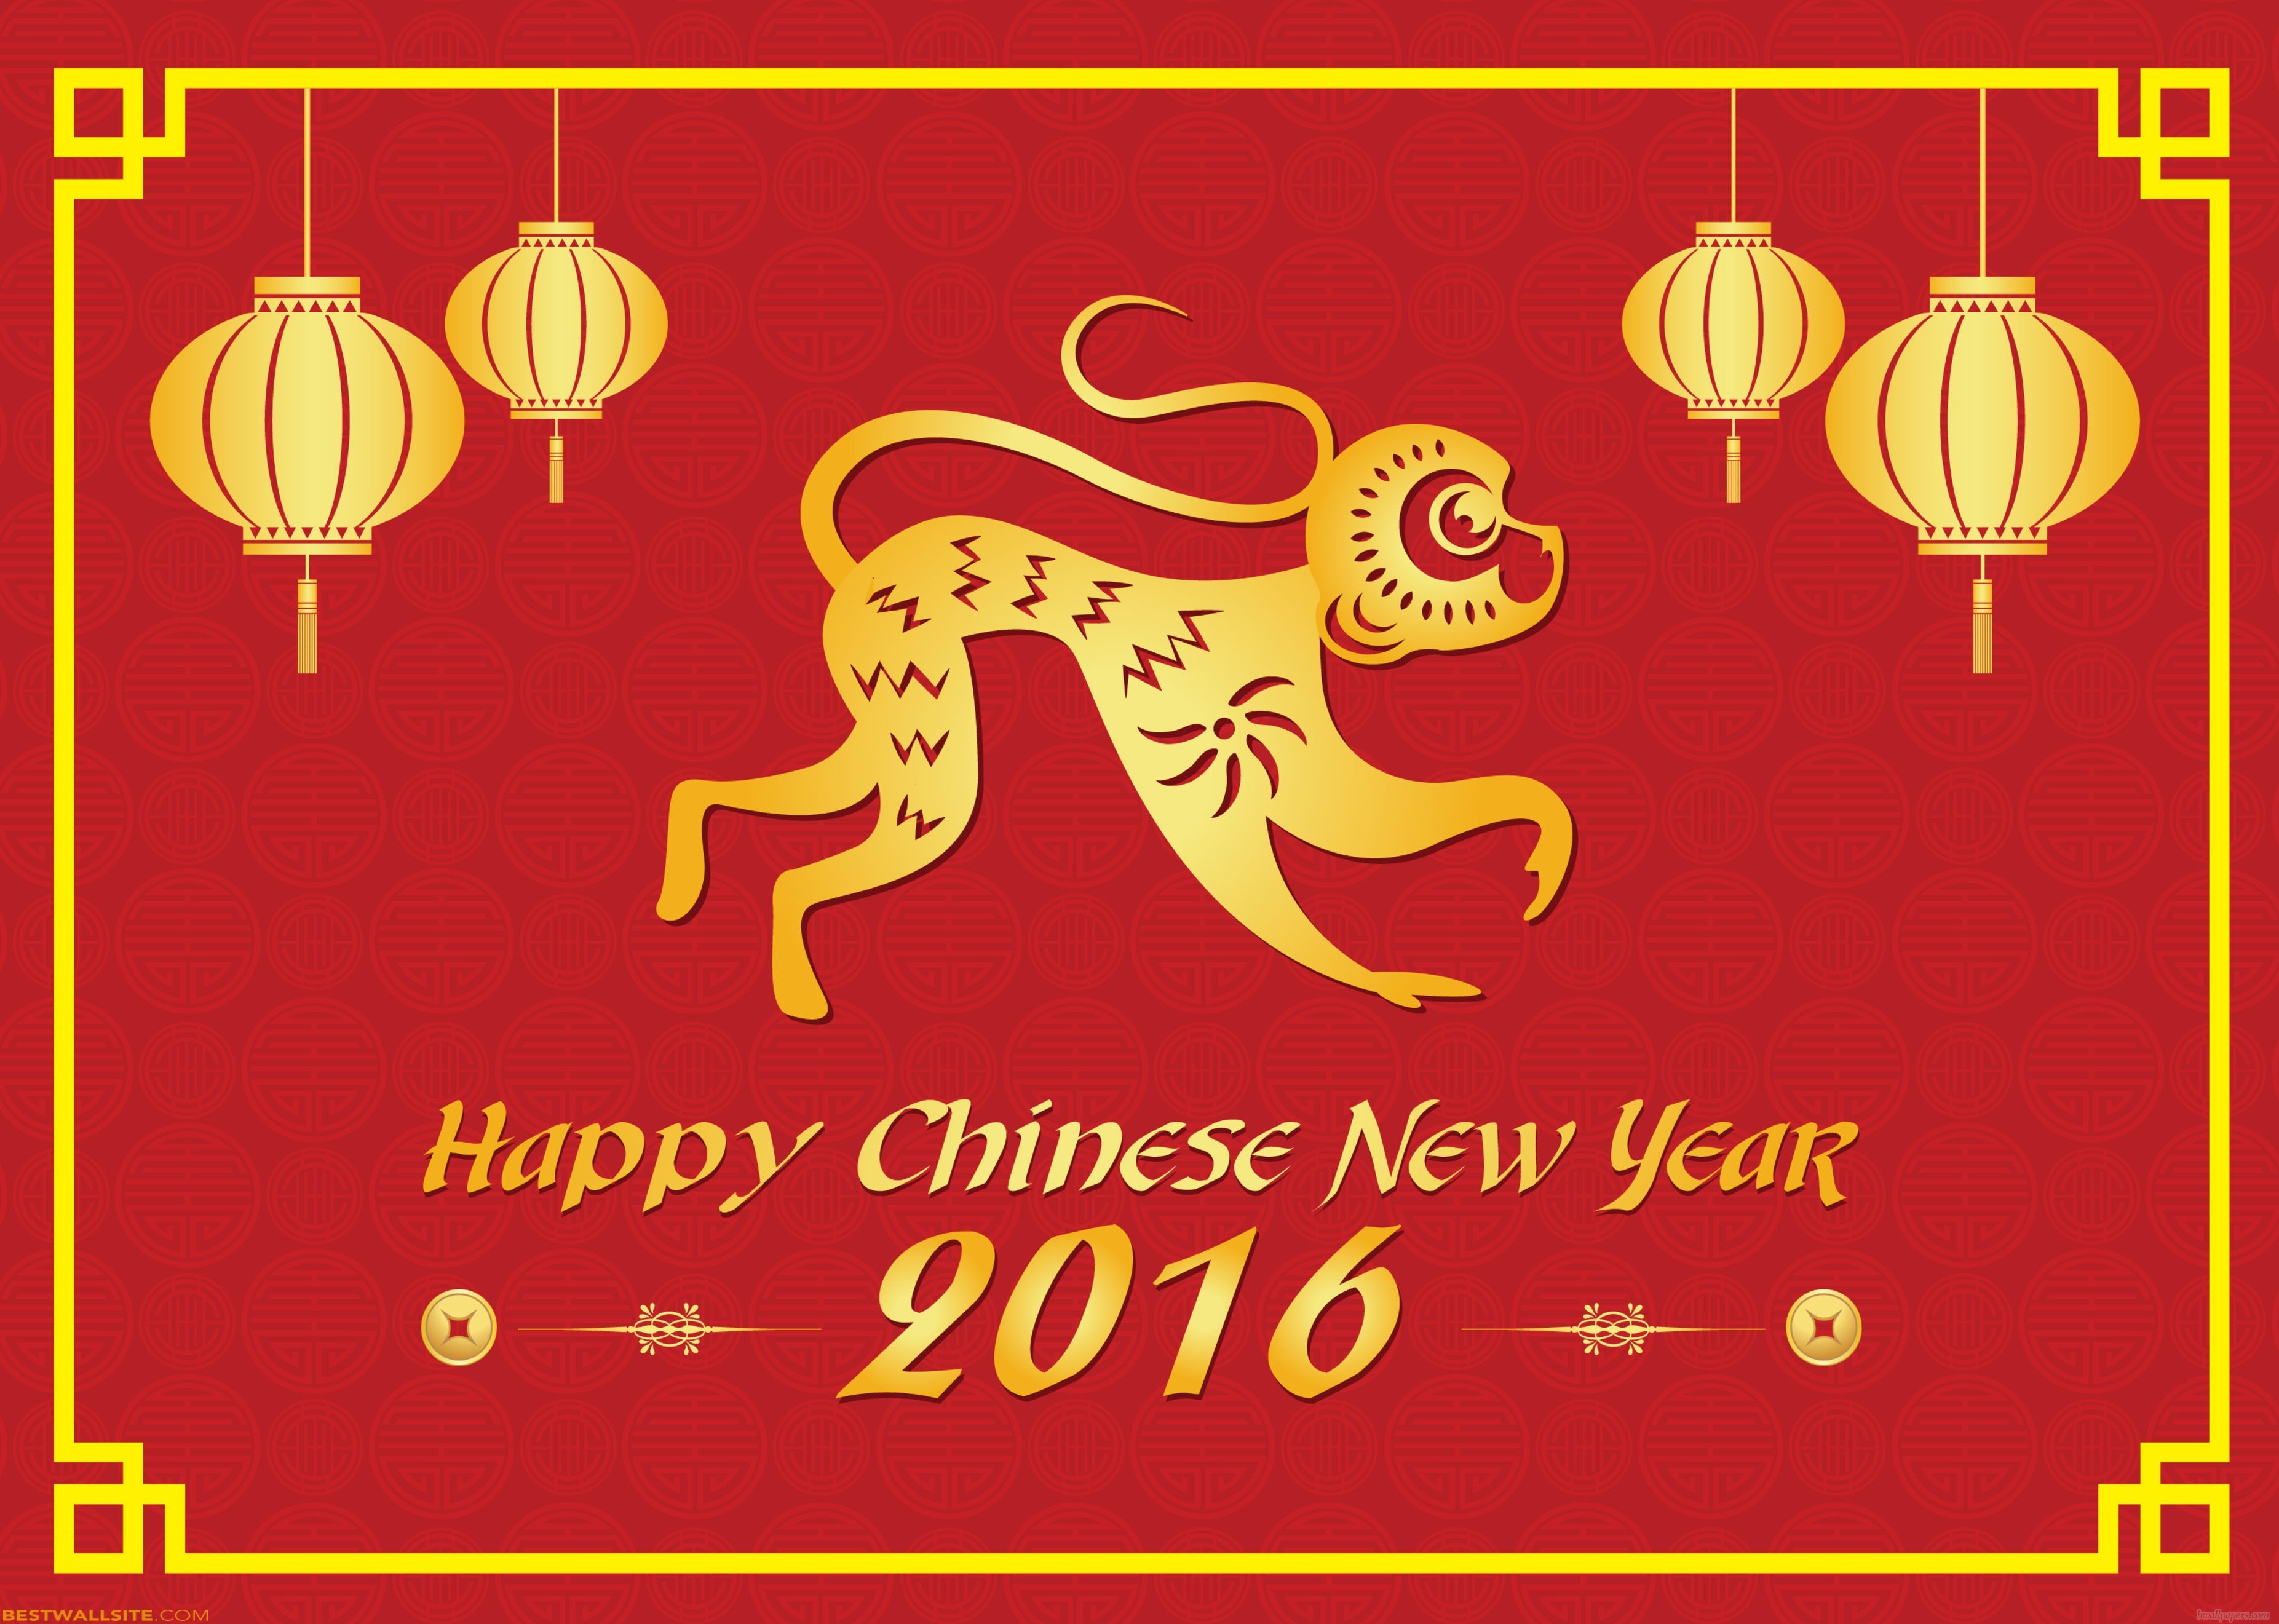 Happy Chinese New Year 2016 - Wallpaper, High Definition ...